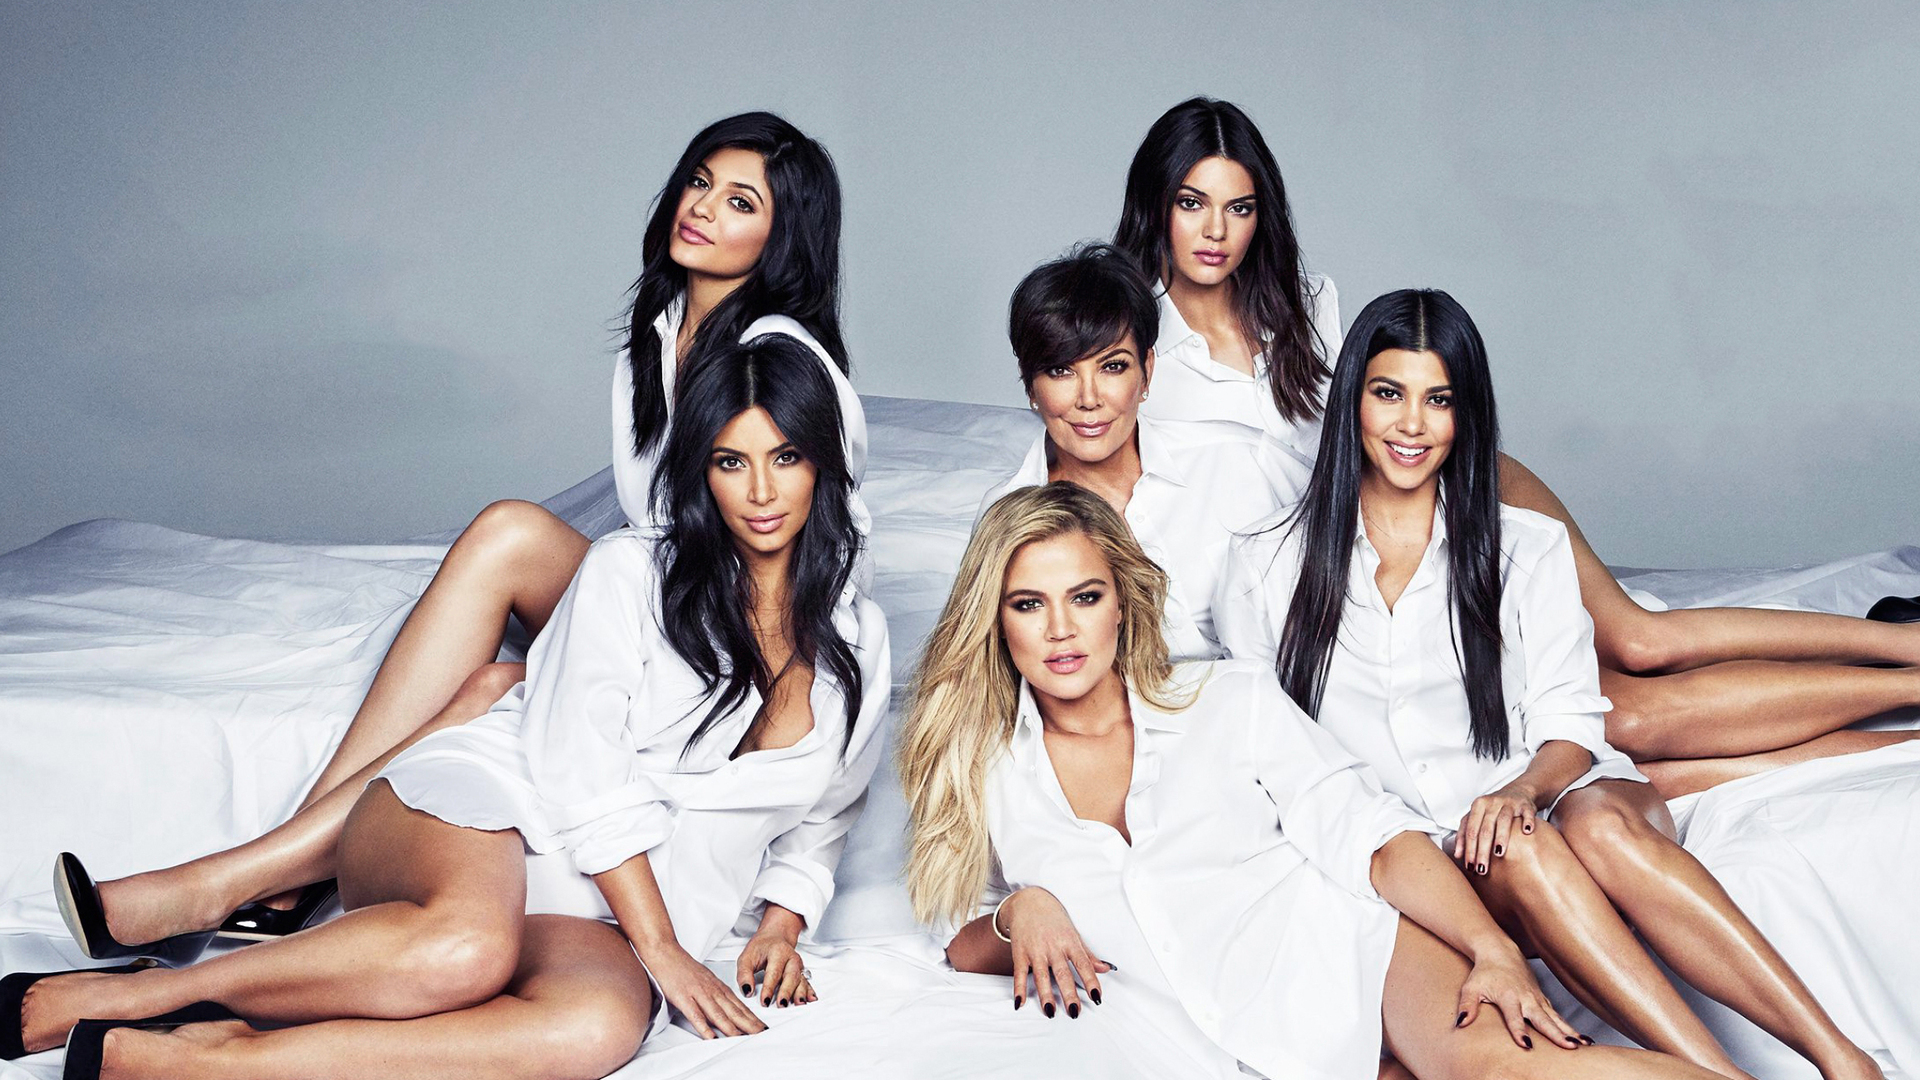 keeping-up-with-the-kardashians-season-14-2018-am.jpg